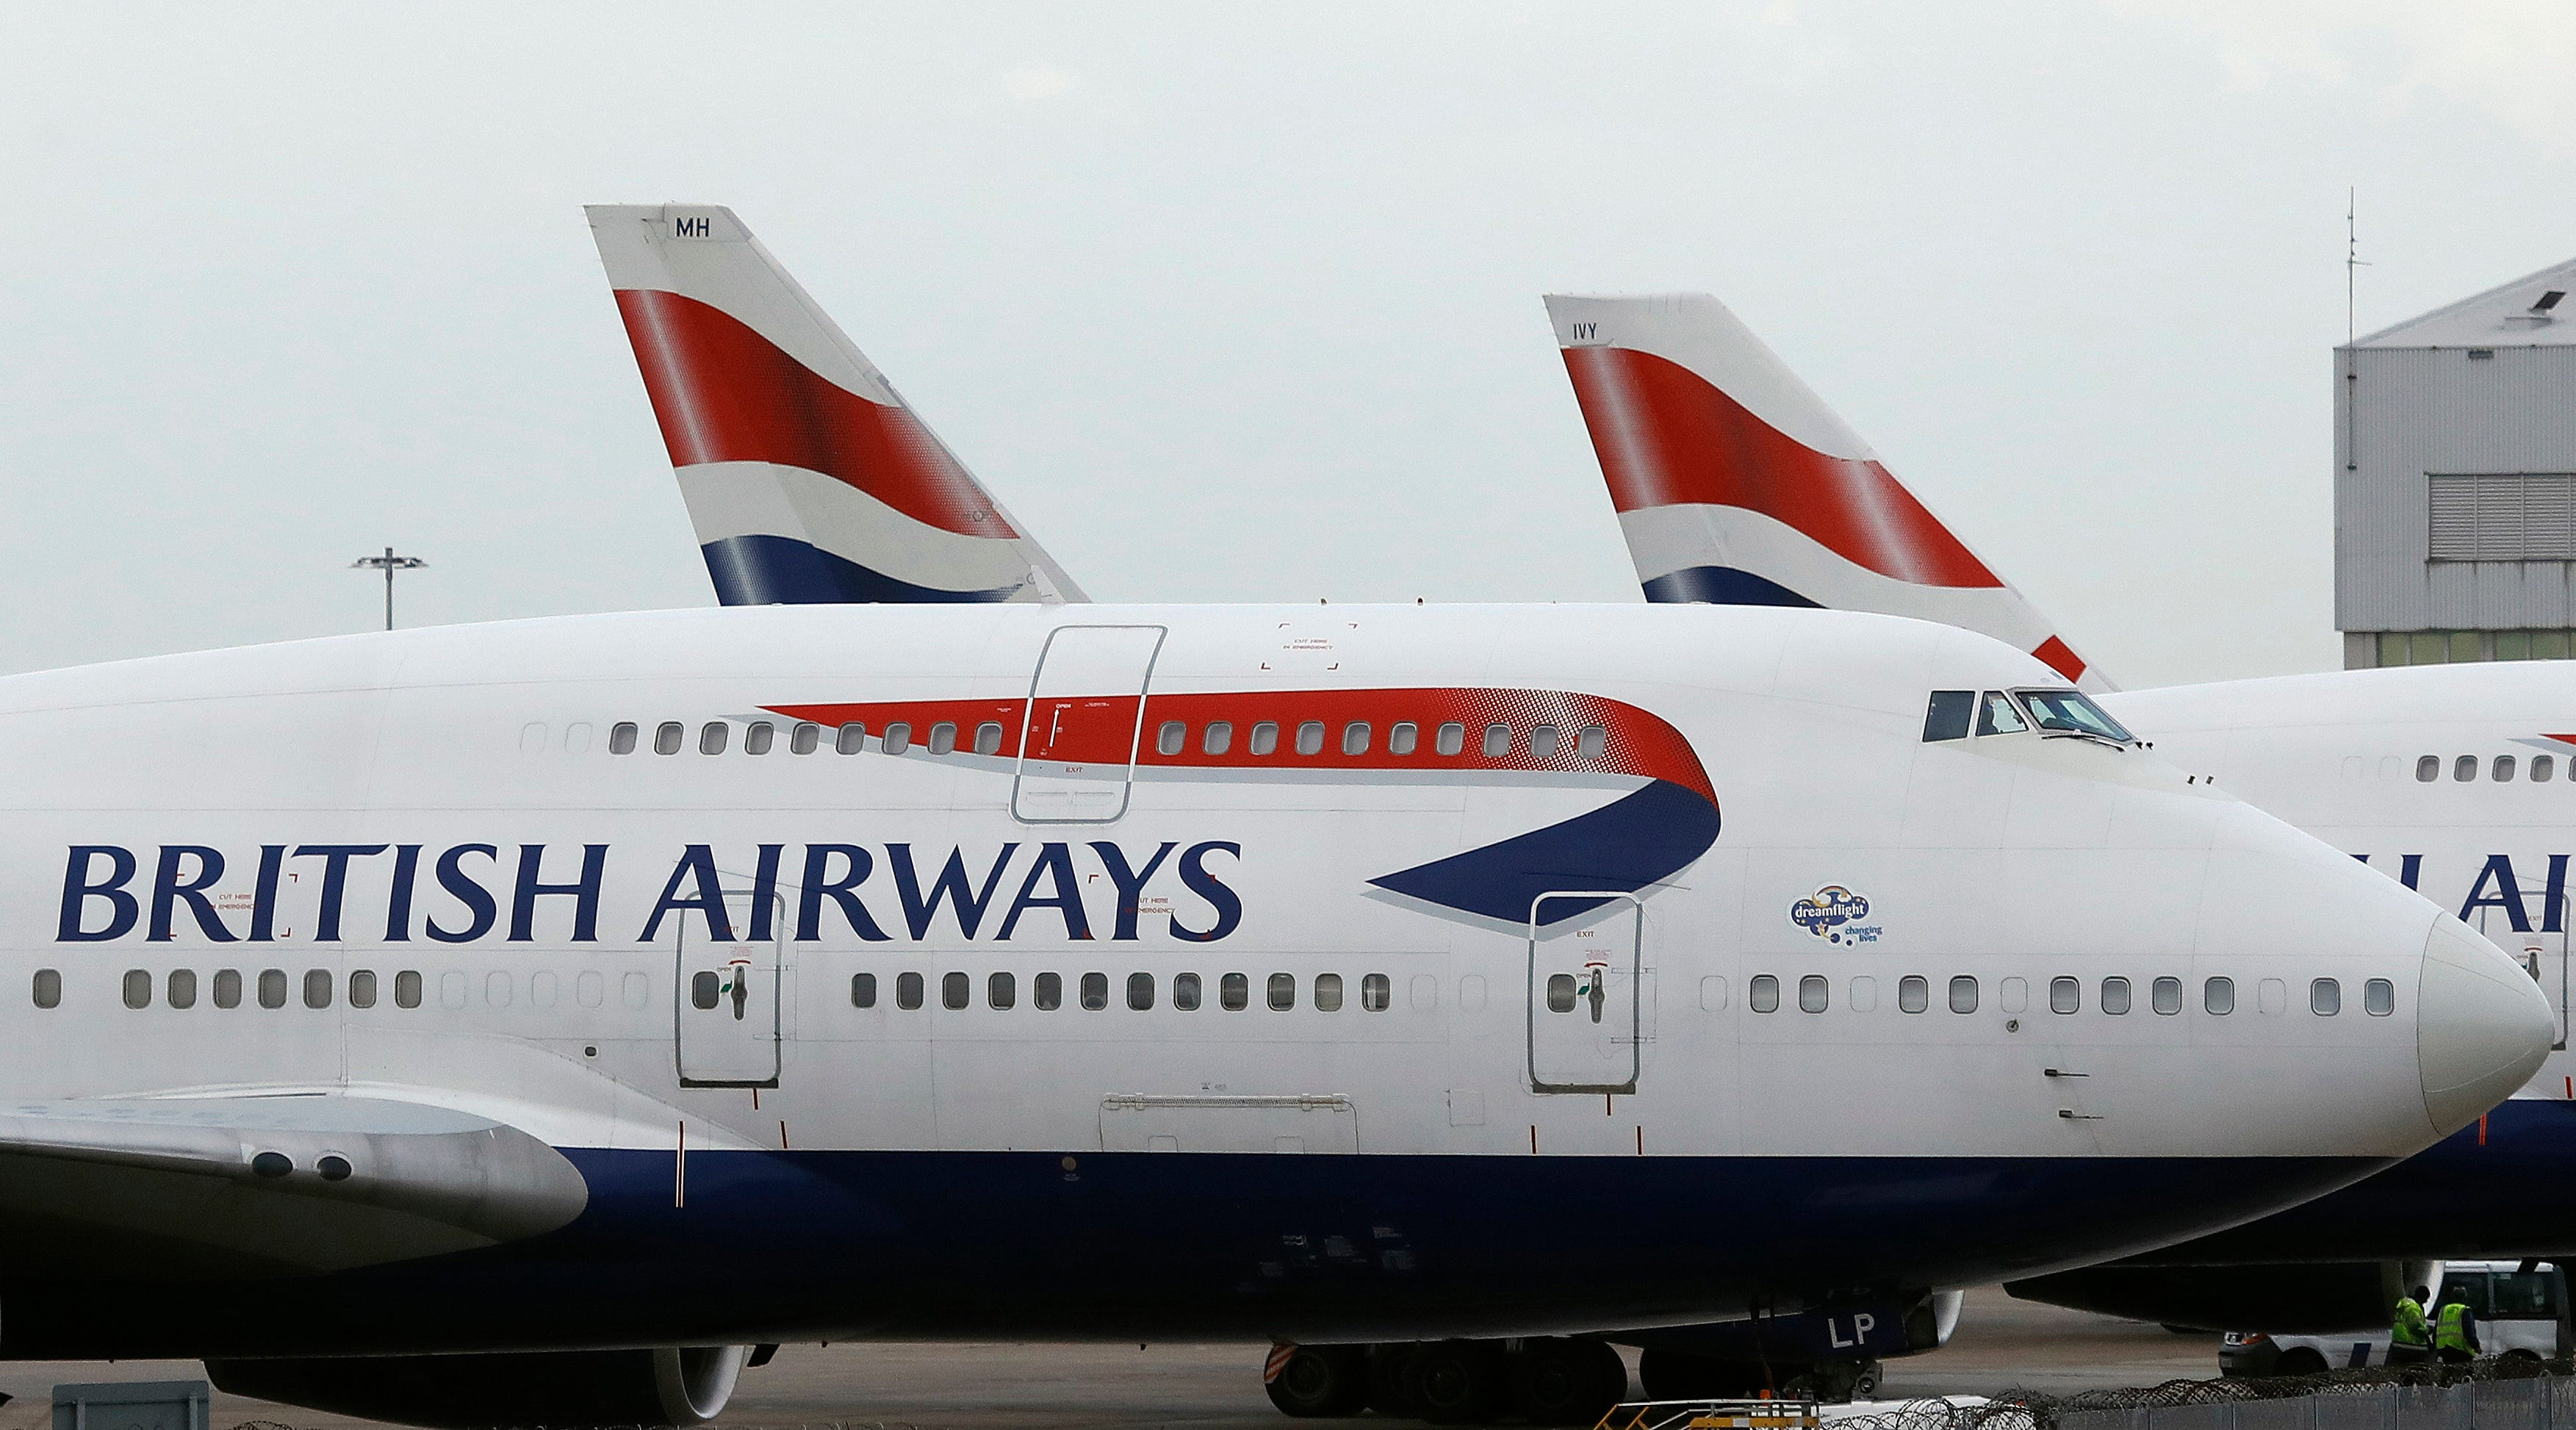 British Airways apologizes for scare after oxygen masks were mistakenly deployed mid-flight